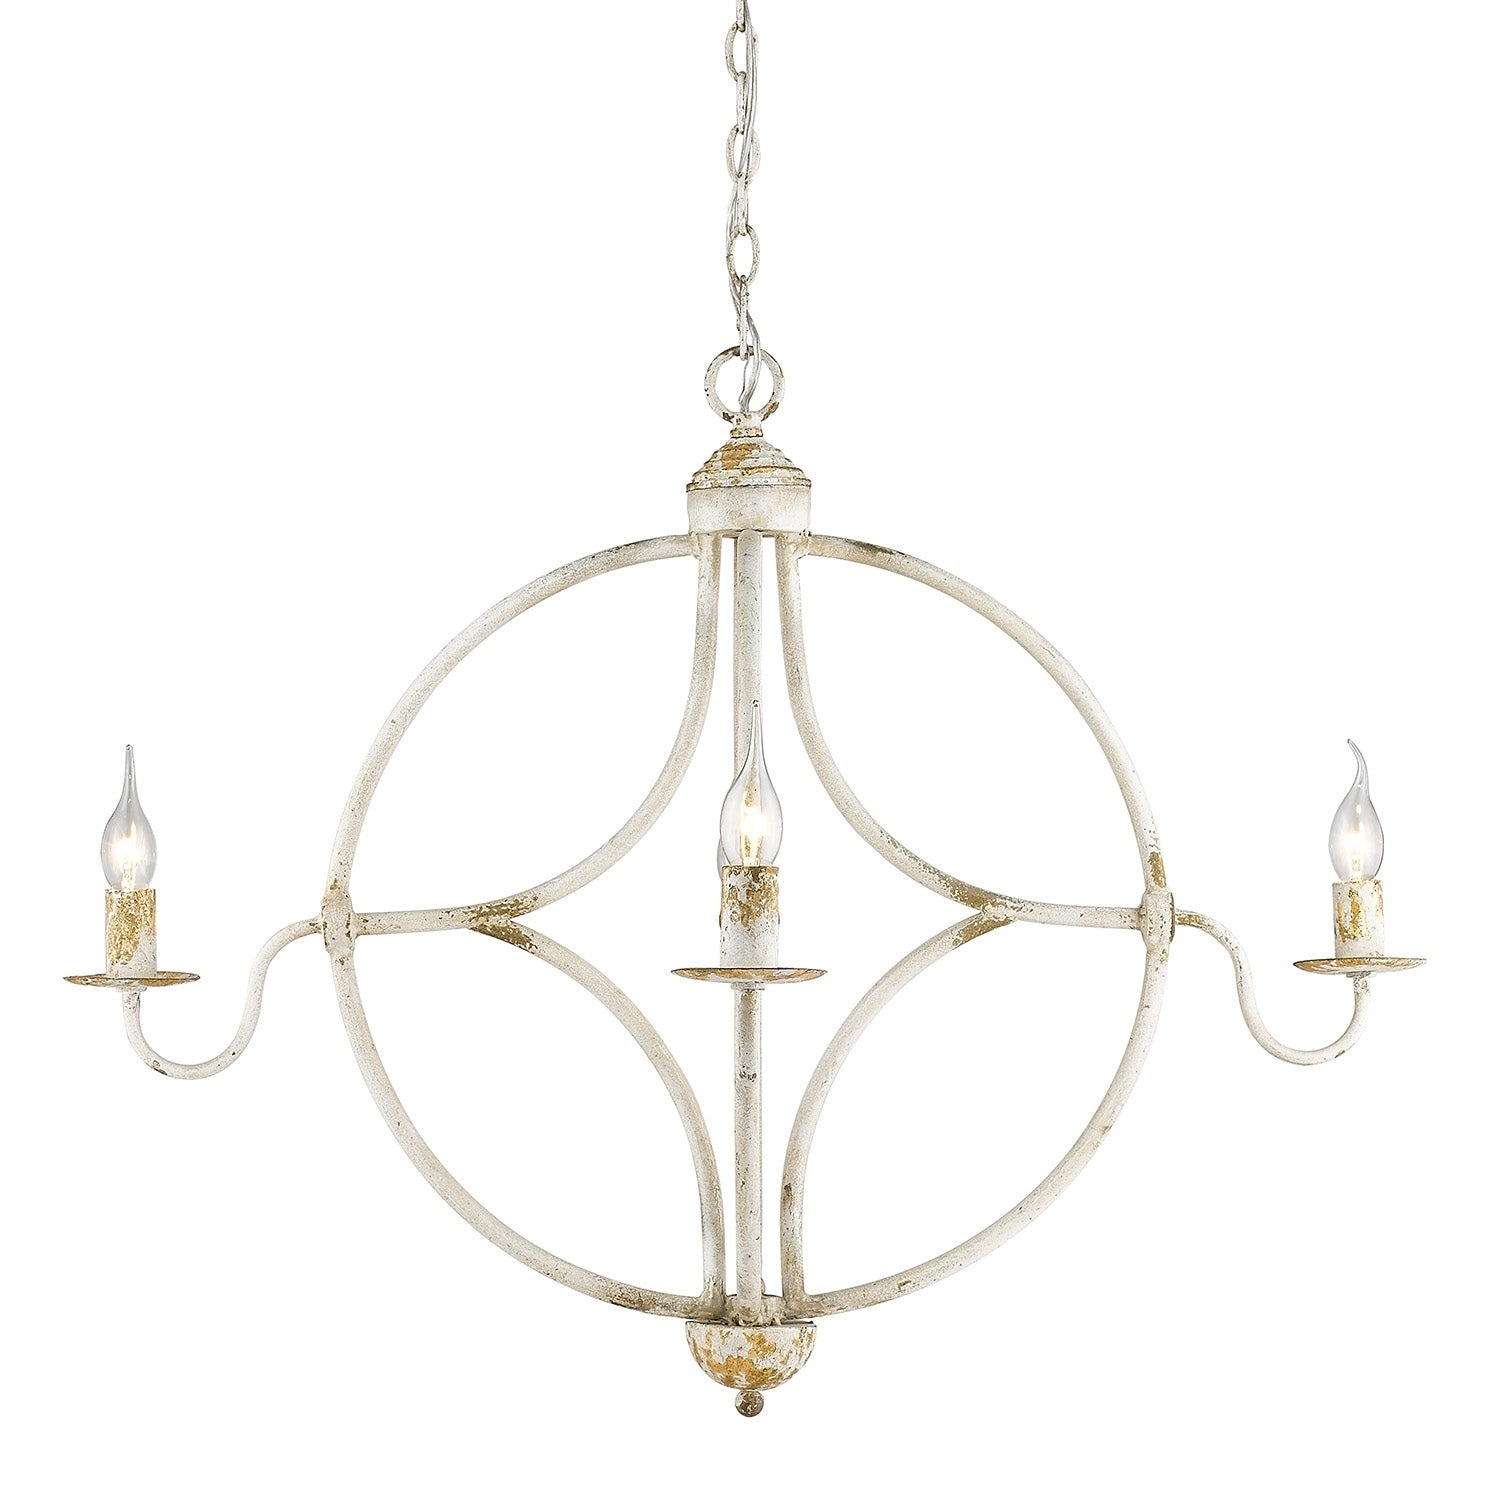 The gray barn pemberley antique ivory metal 4 light rustic chandelier